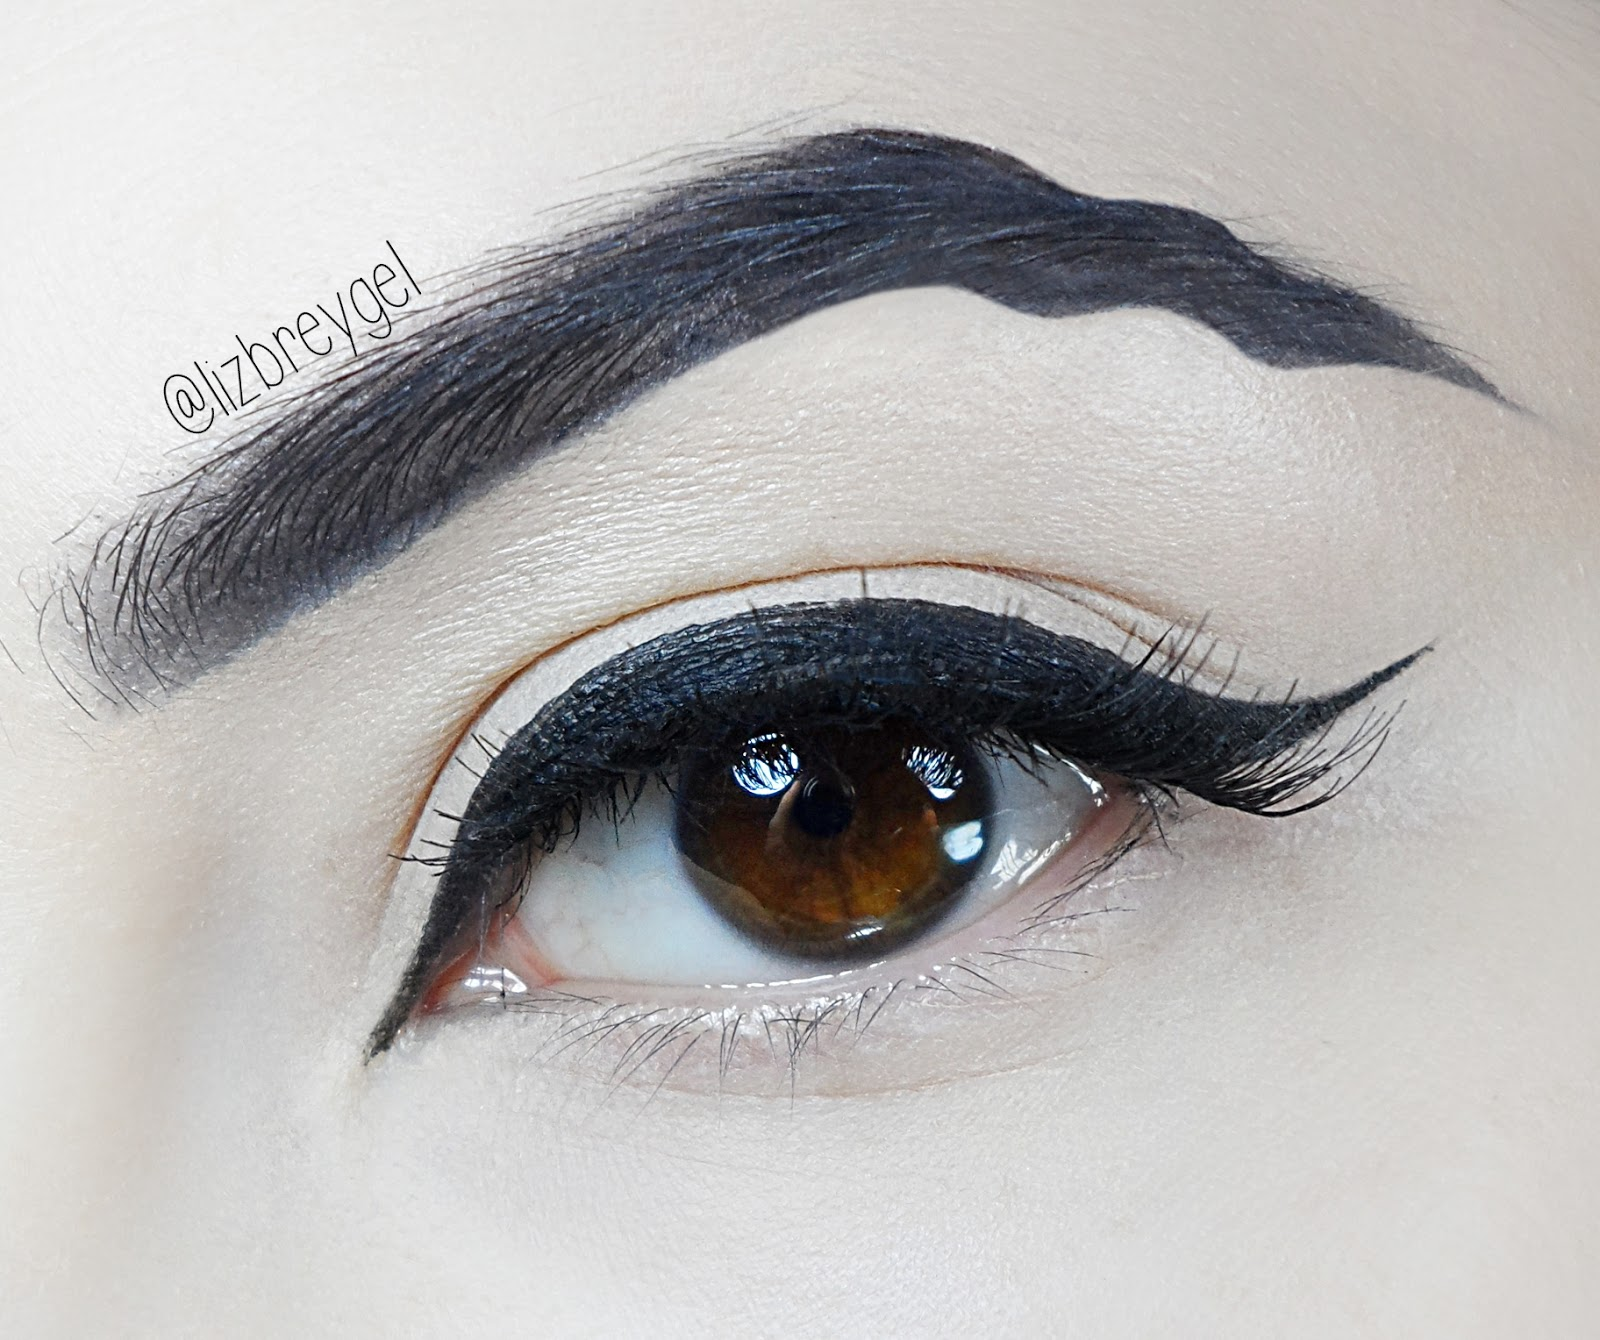 liz breygel makeup tutorial trend Squiggly Eyebrows wavy brows gothic makeup